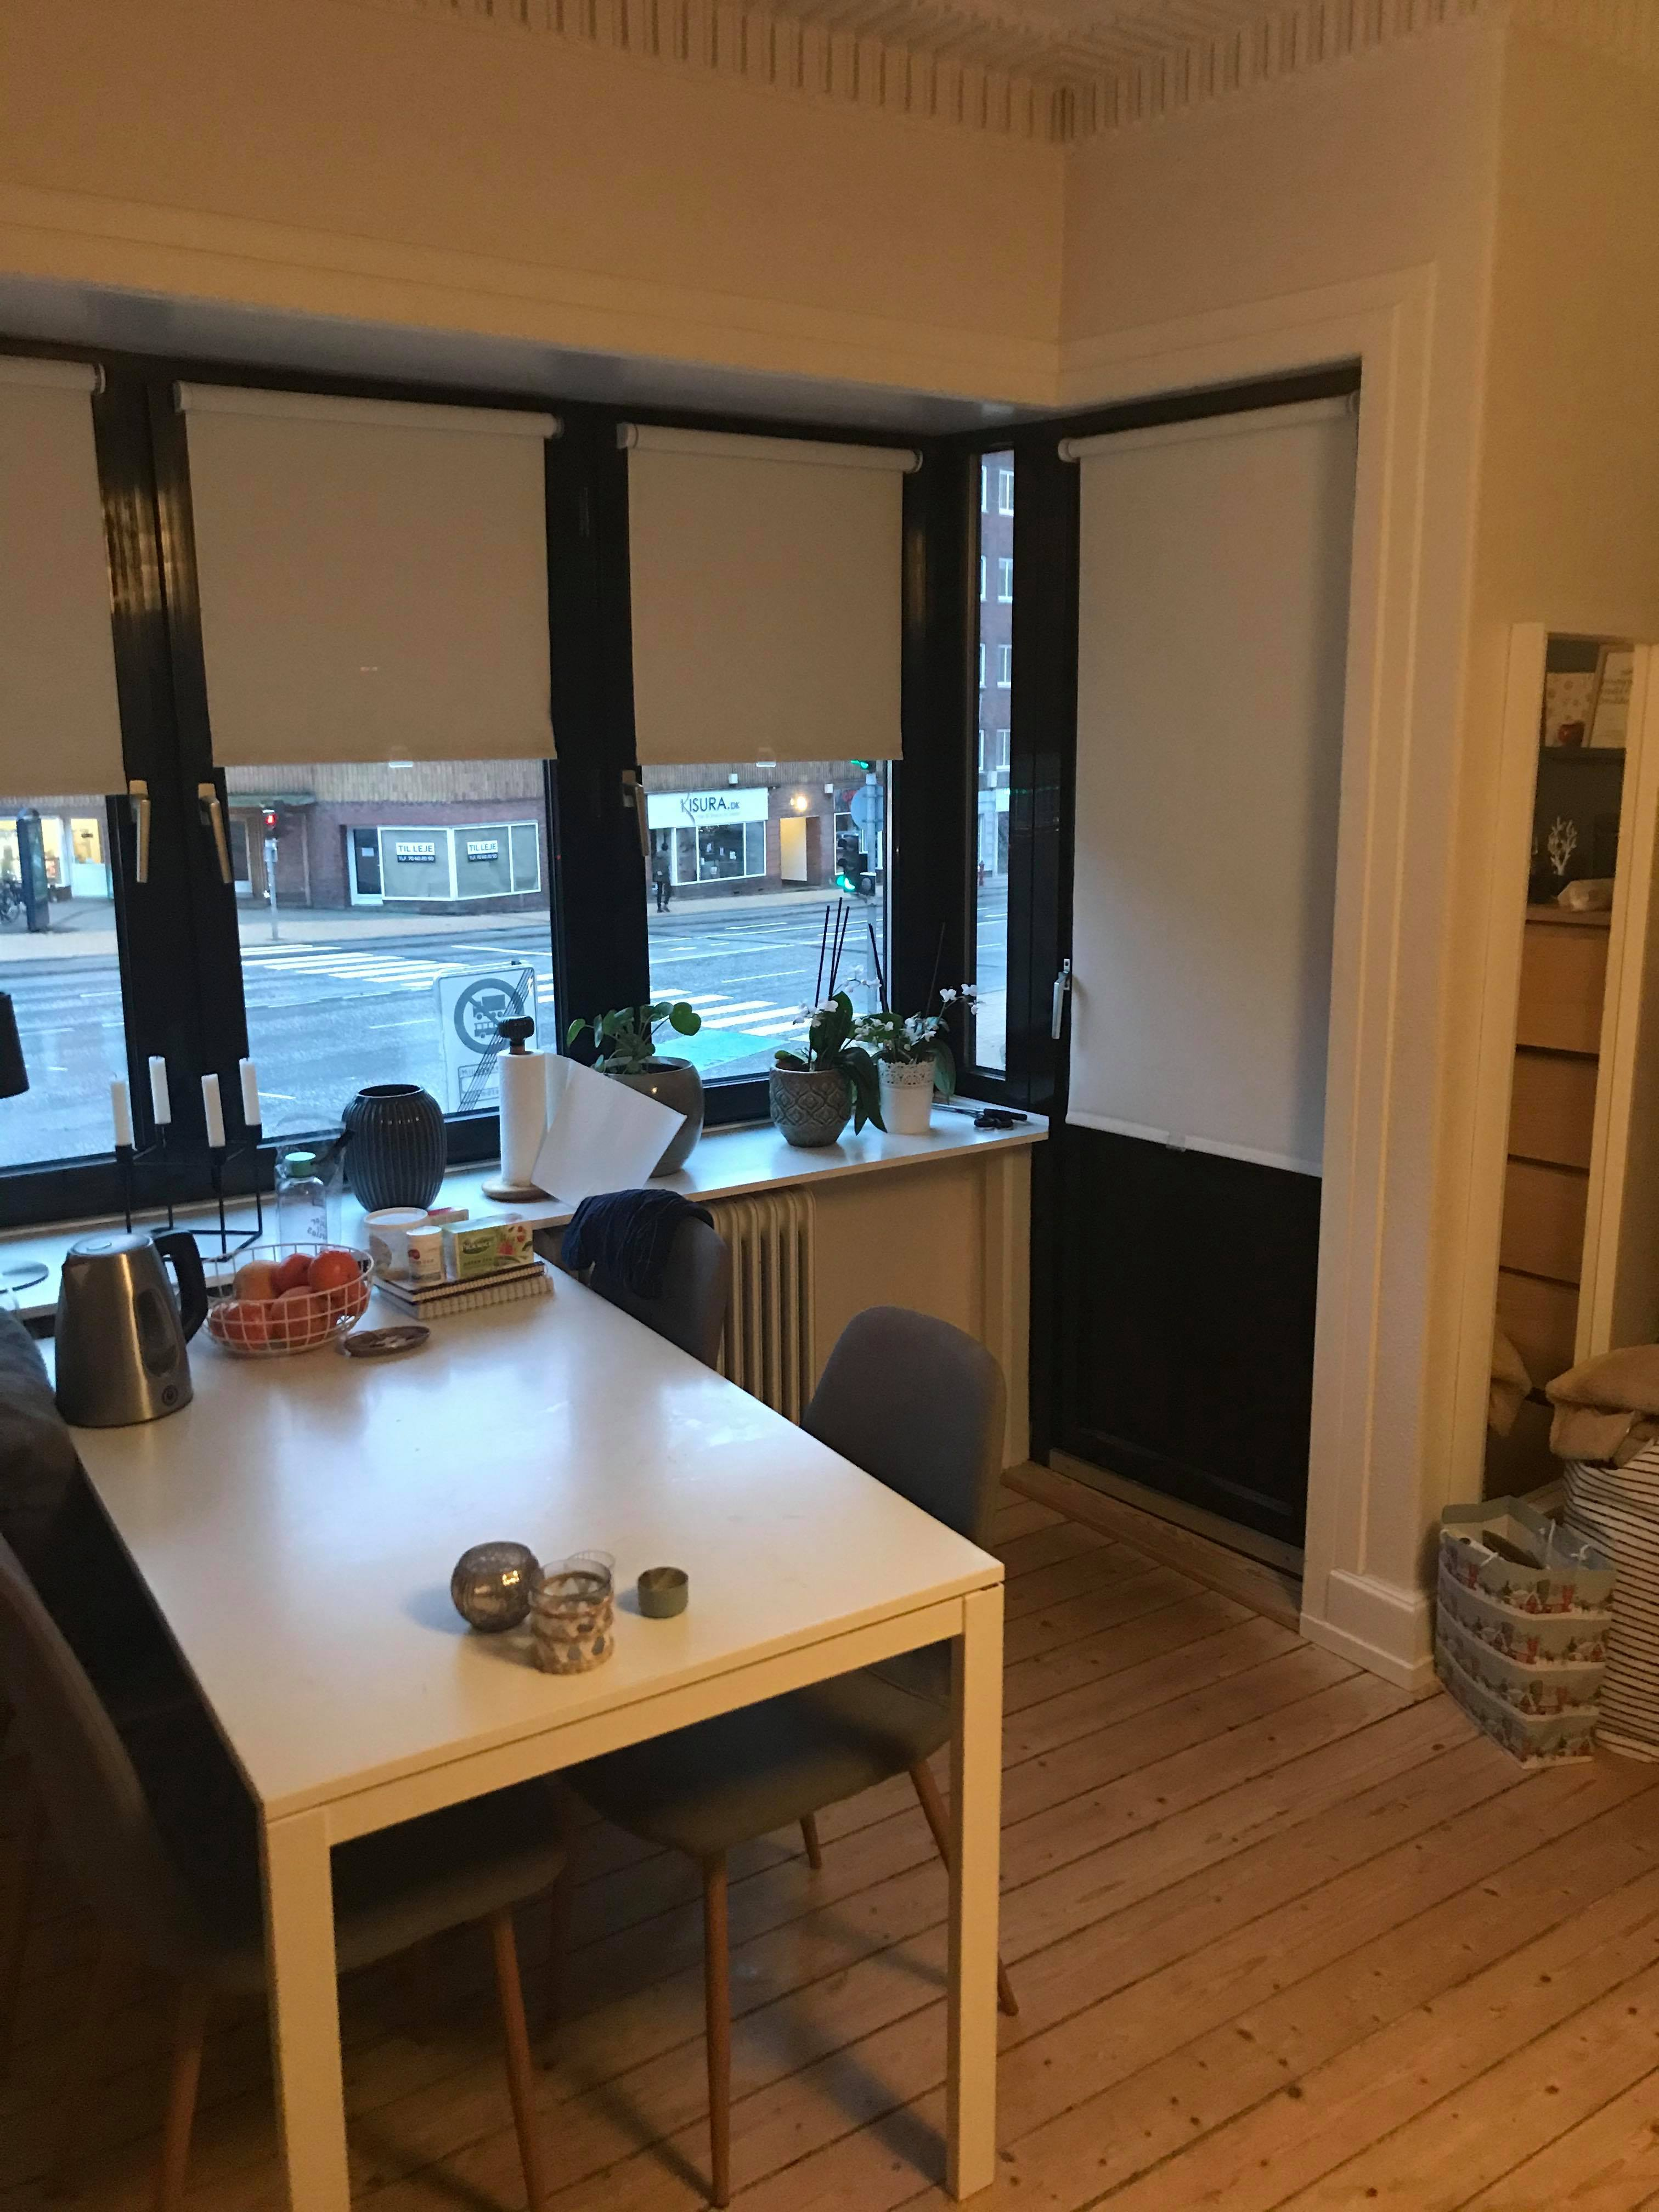 Apartment for rent in Aalborg city center (3 rooms available)